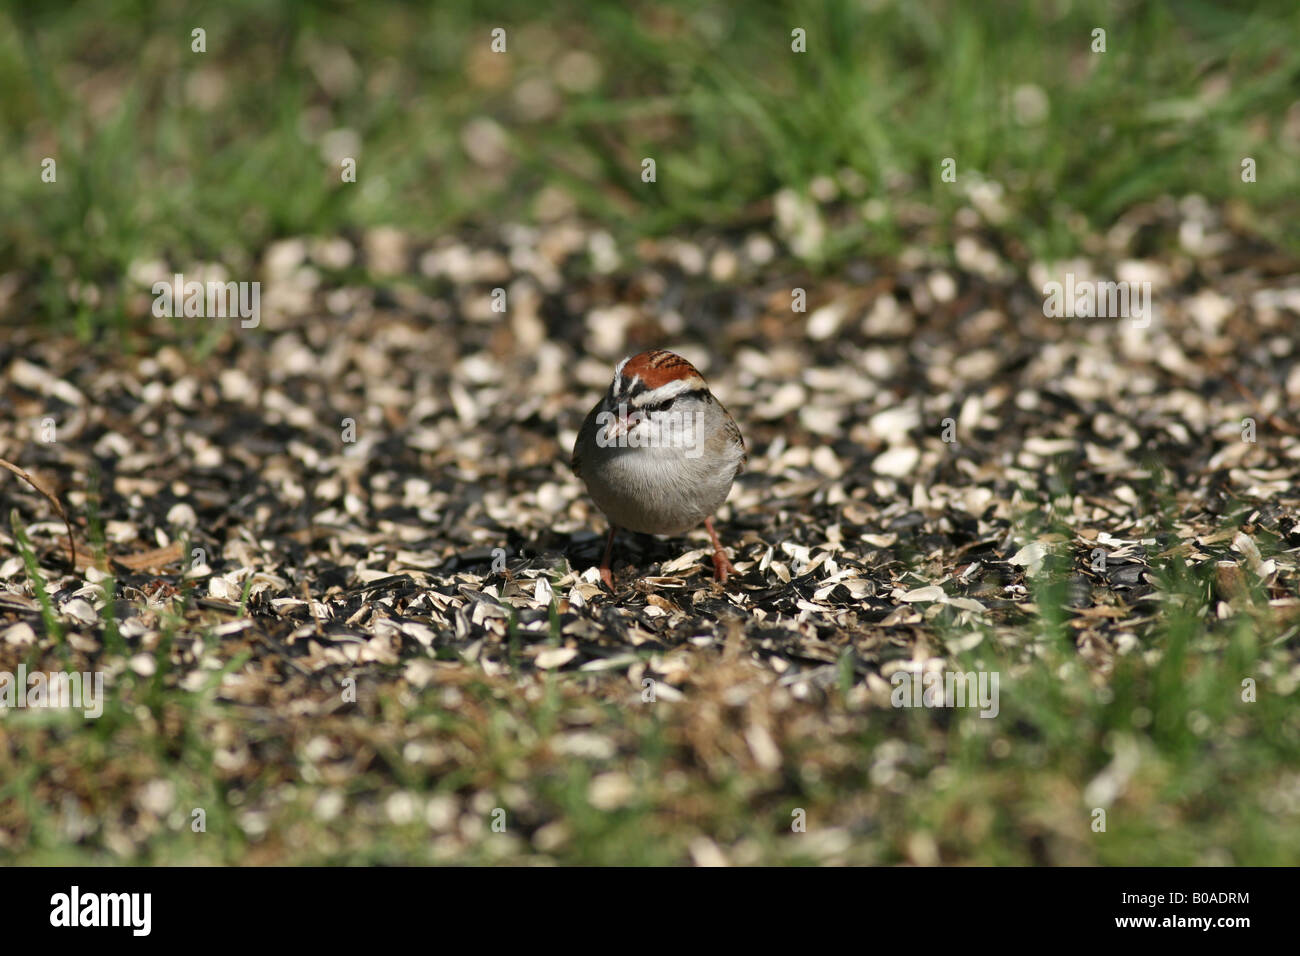 Chipping Sparrow eating sunflower seed tongue visible - Stock Image